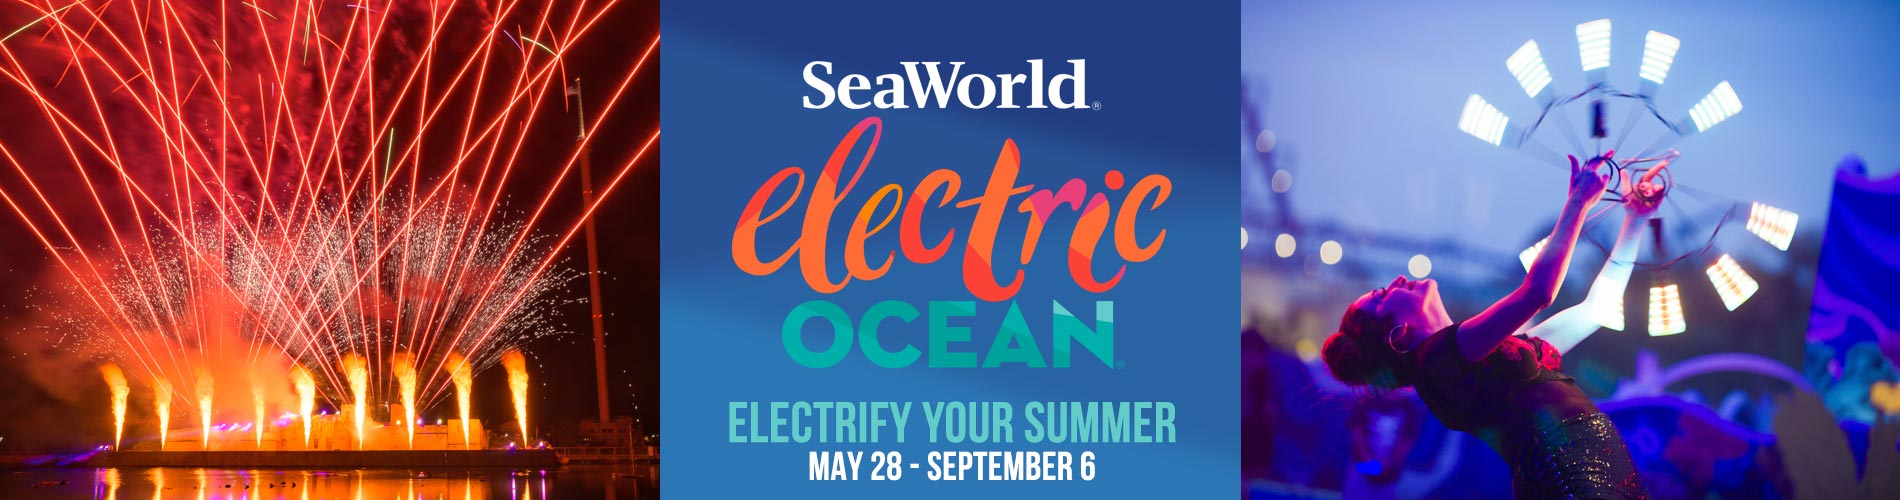 Electrify Your Summer during SeaWorld Electric Ocean